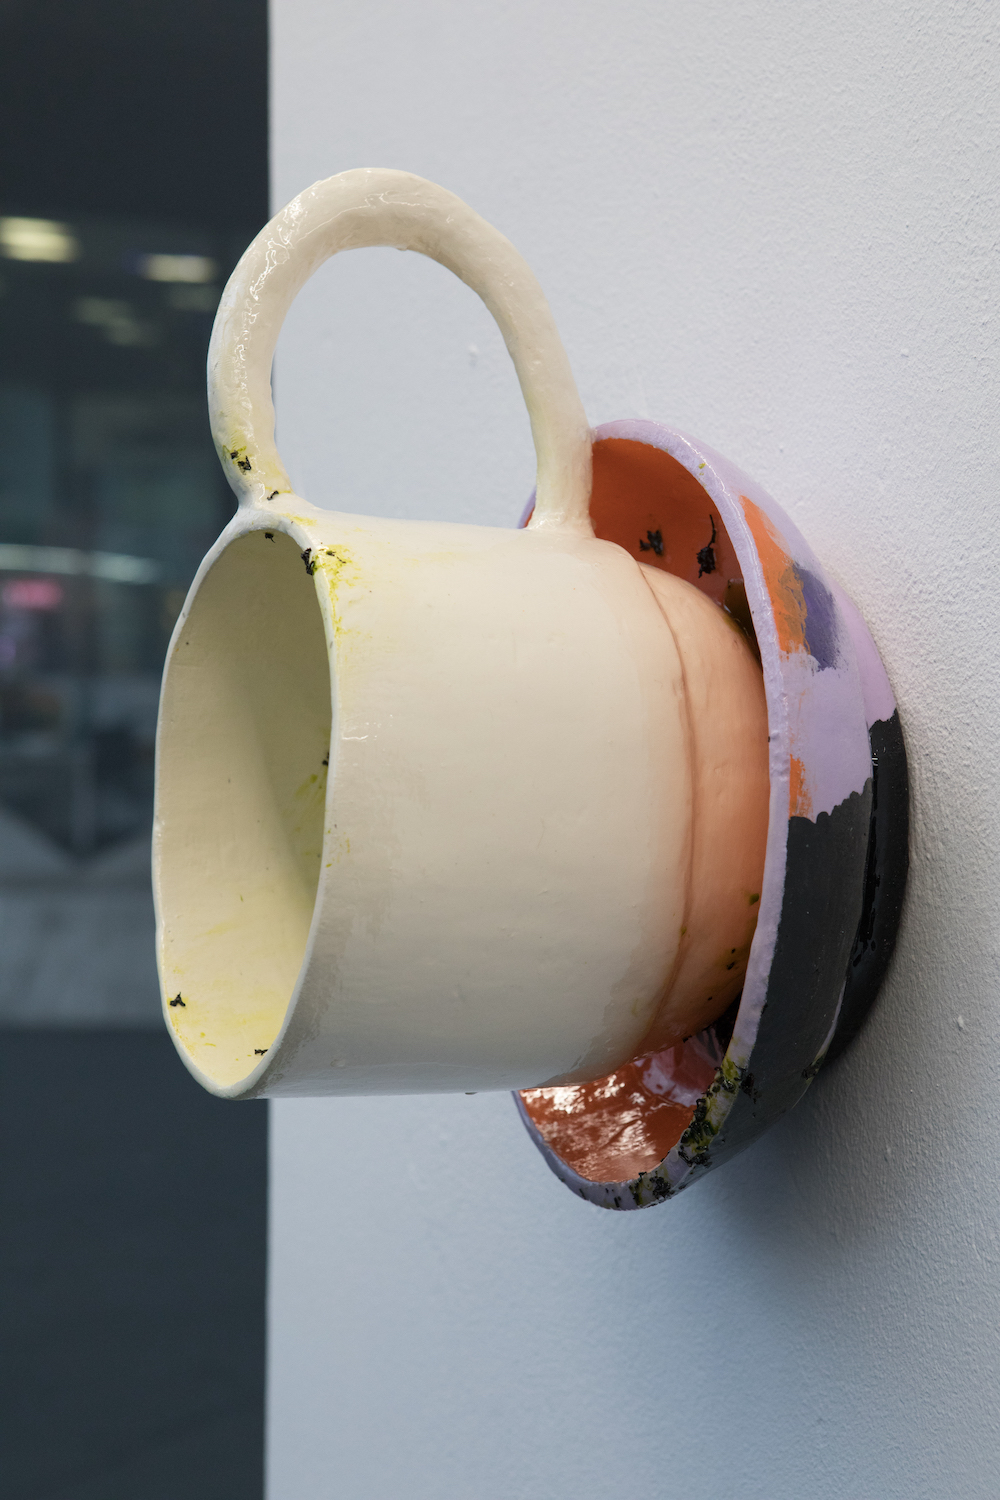 Ilaria Vinci, And nothing but the truth, 2021. Plaster, enamel, resin, tea leaves. 40 x 30 x 23 cm.